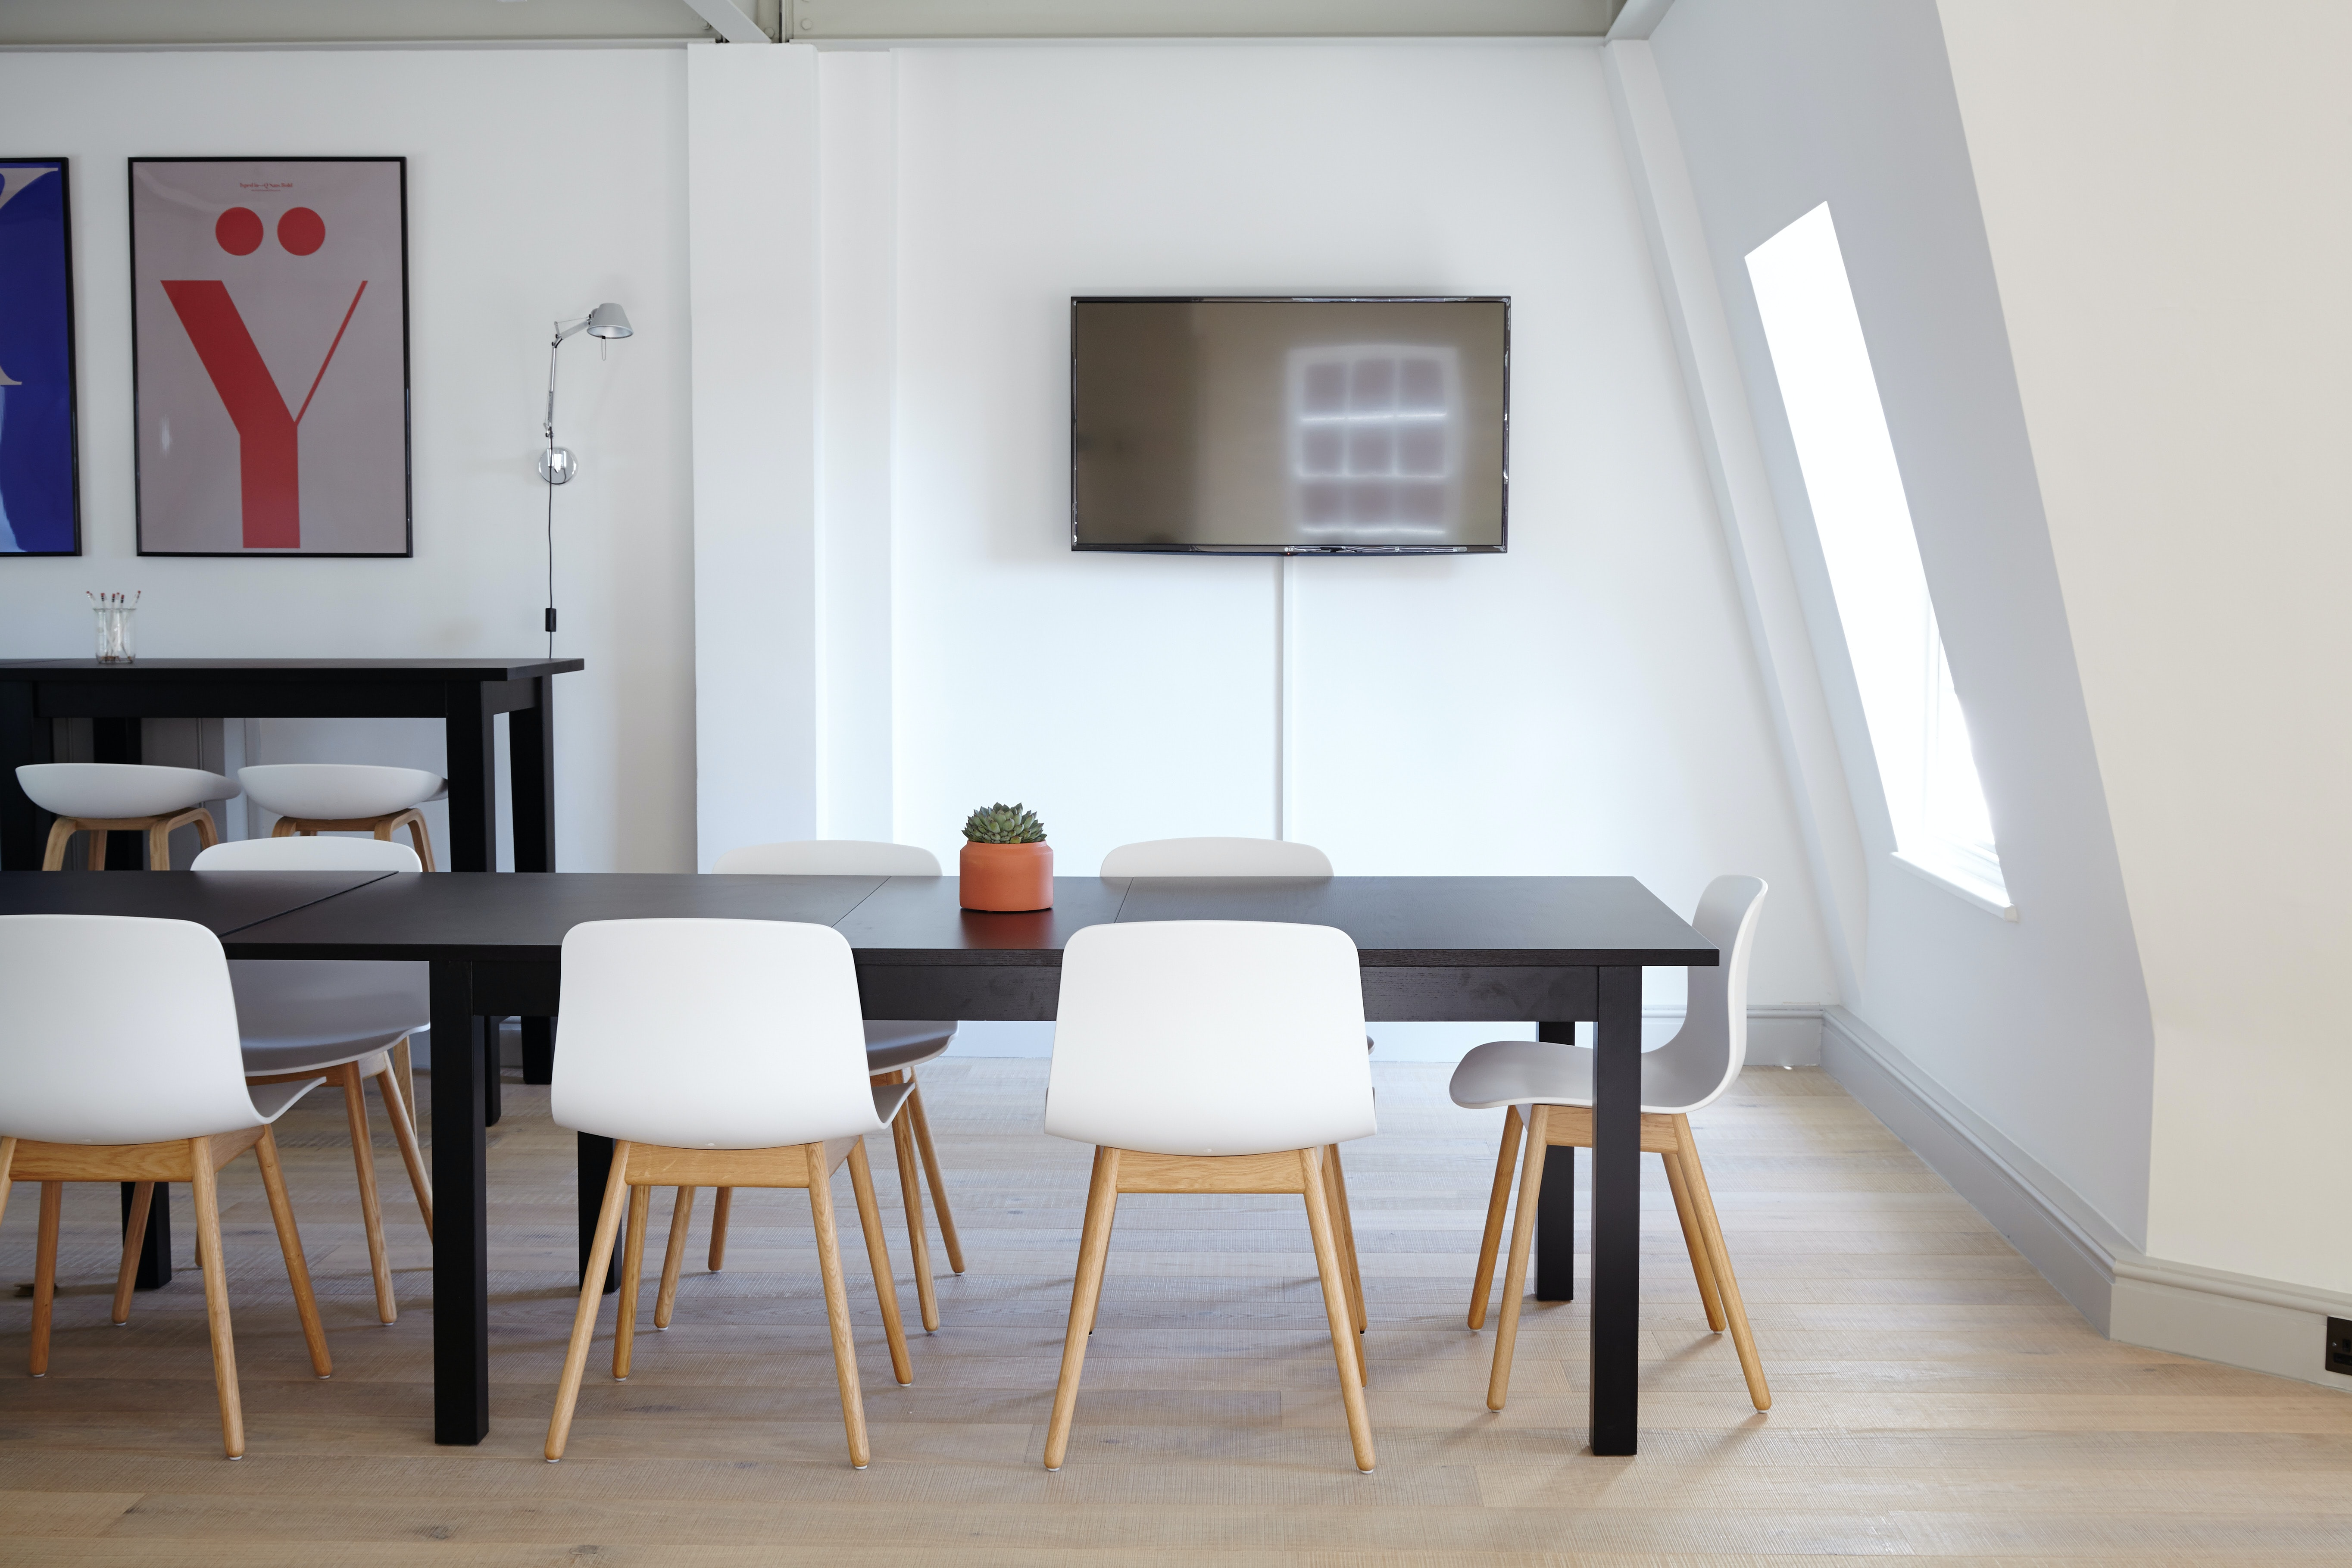 An Elegant Meeting Room With A Television On The Wall